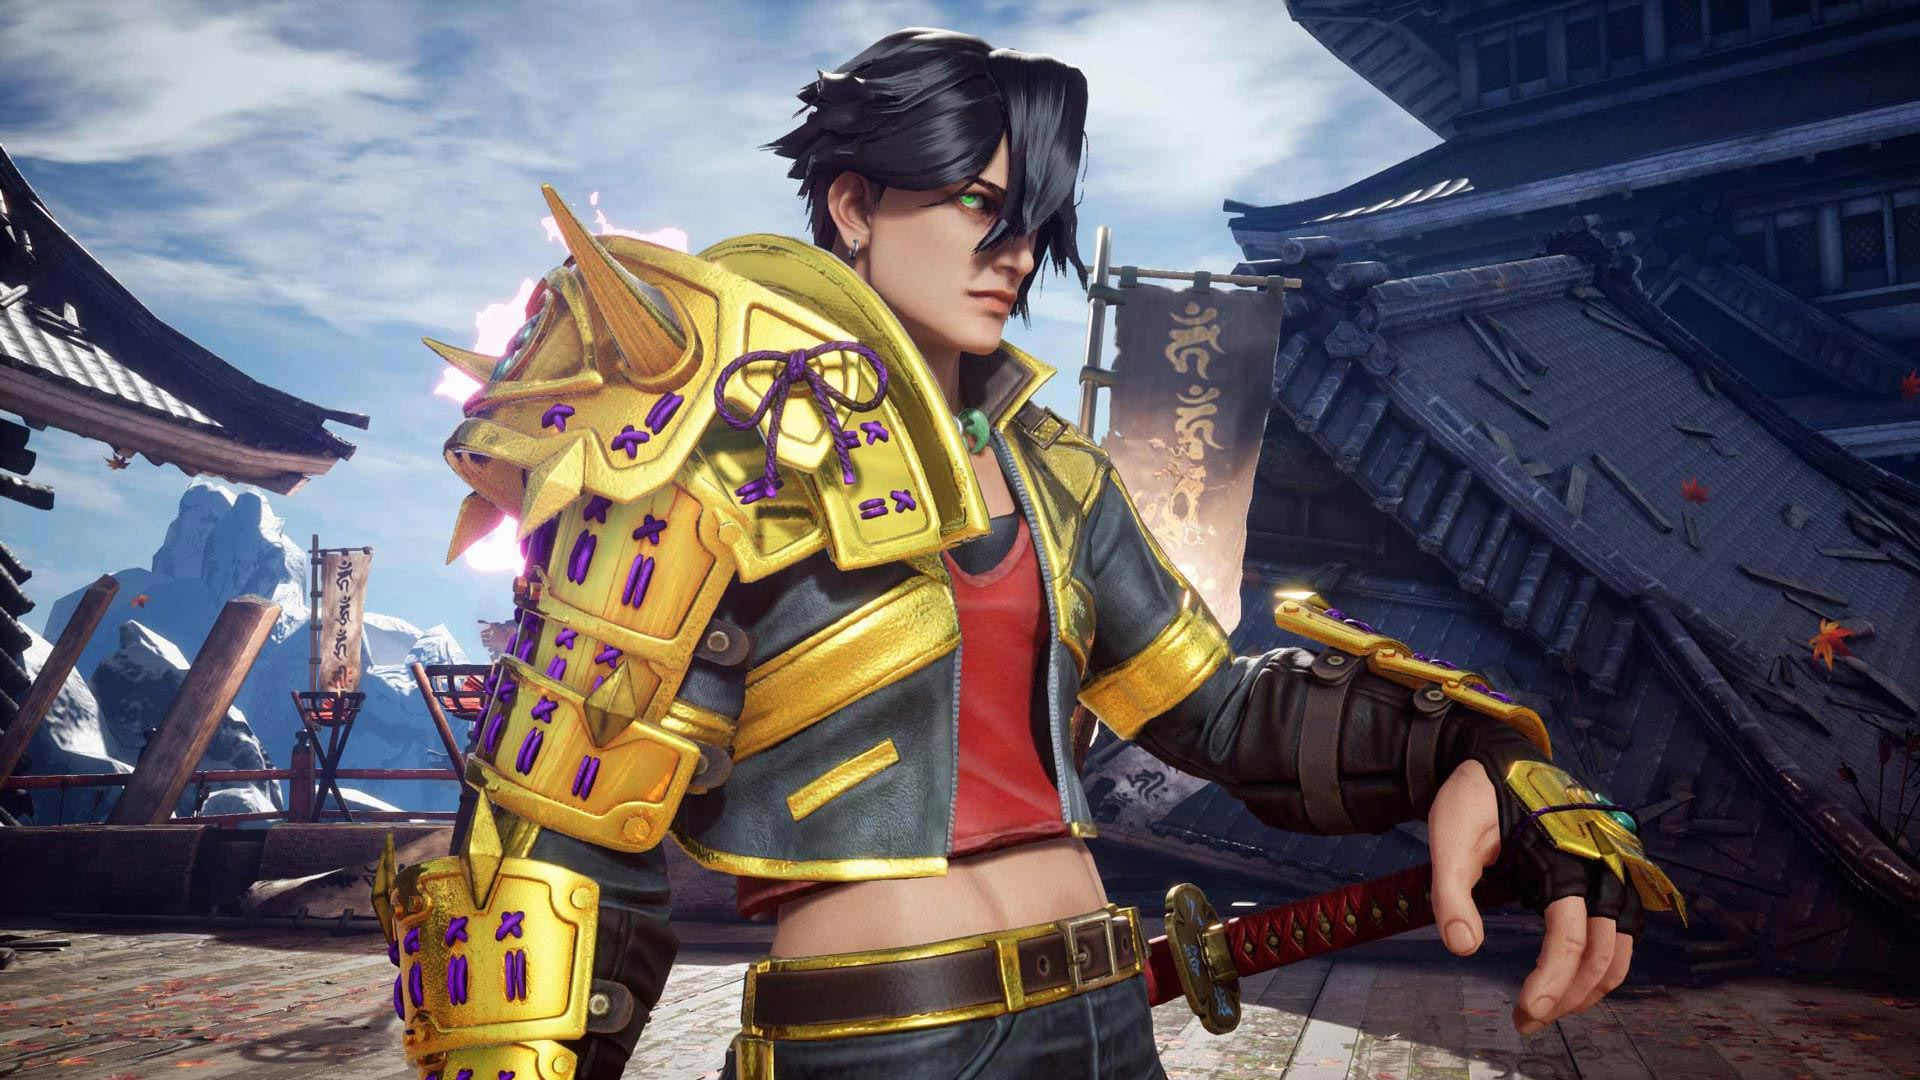 Fighting EX Layer launch screenshots 3 out of 10 image gallery